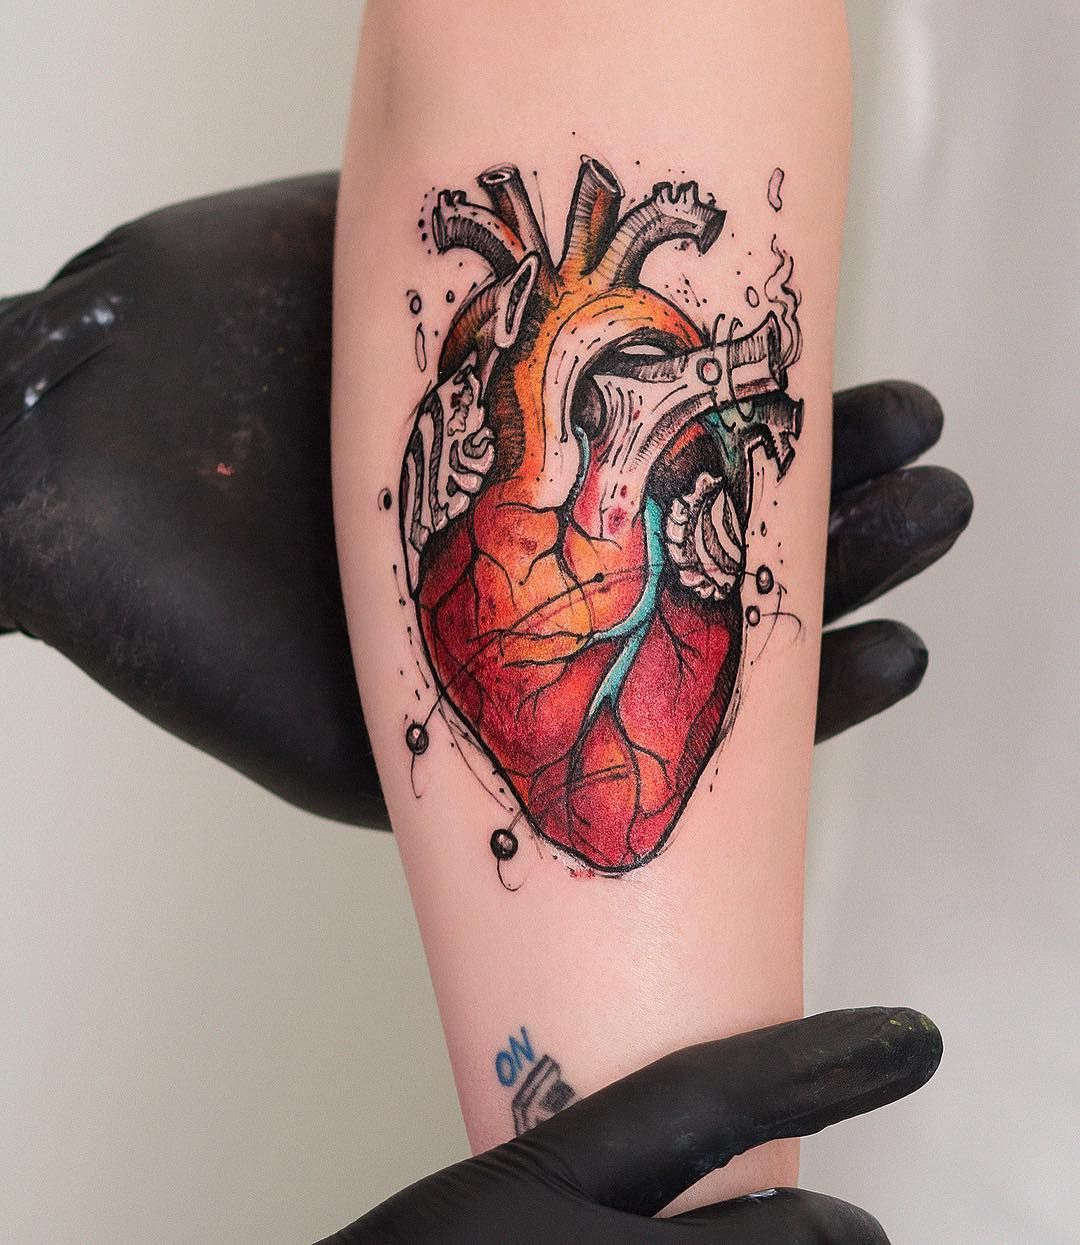 39 Inspiring Anatomical Heart Tattoos Anatomical heart